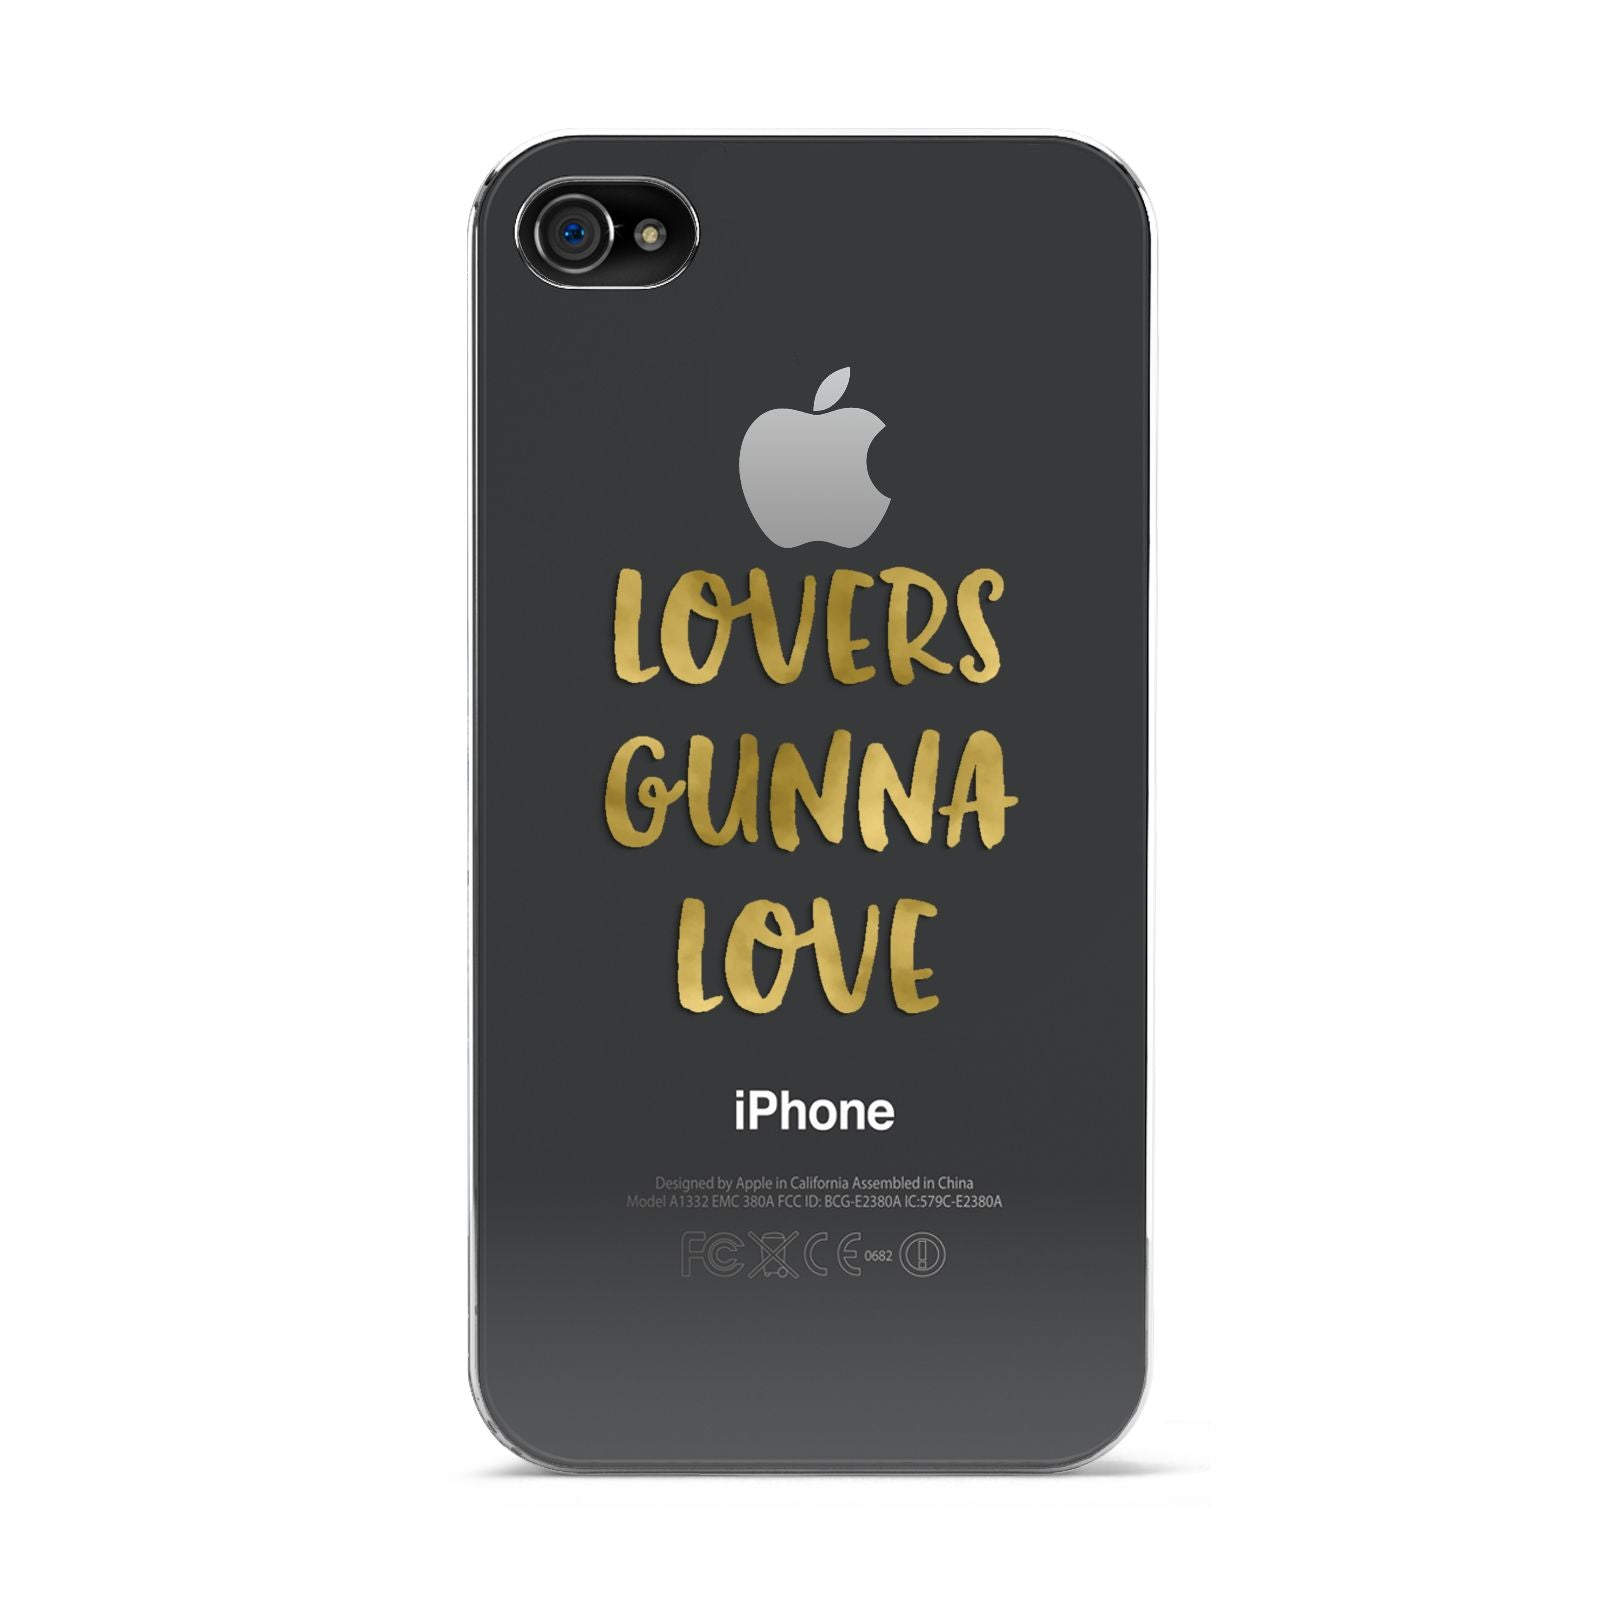 Lovers Gunna Love Real Gold Foil Apple iPhone 4s Case